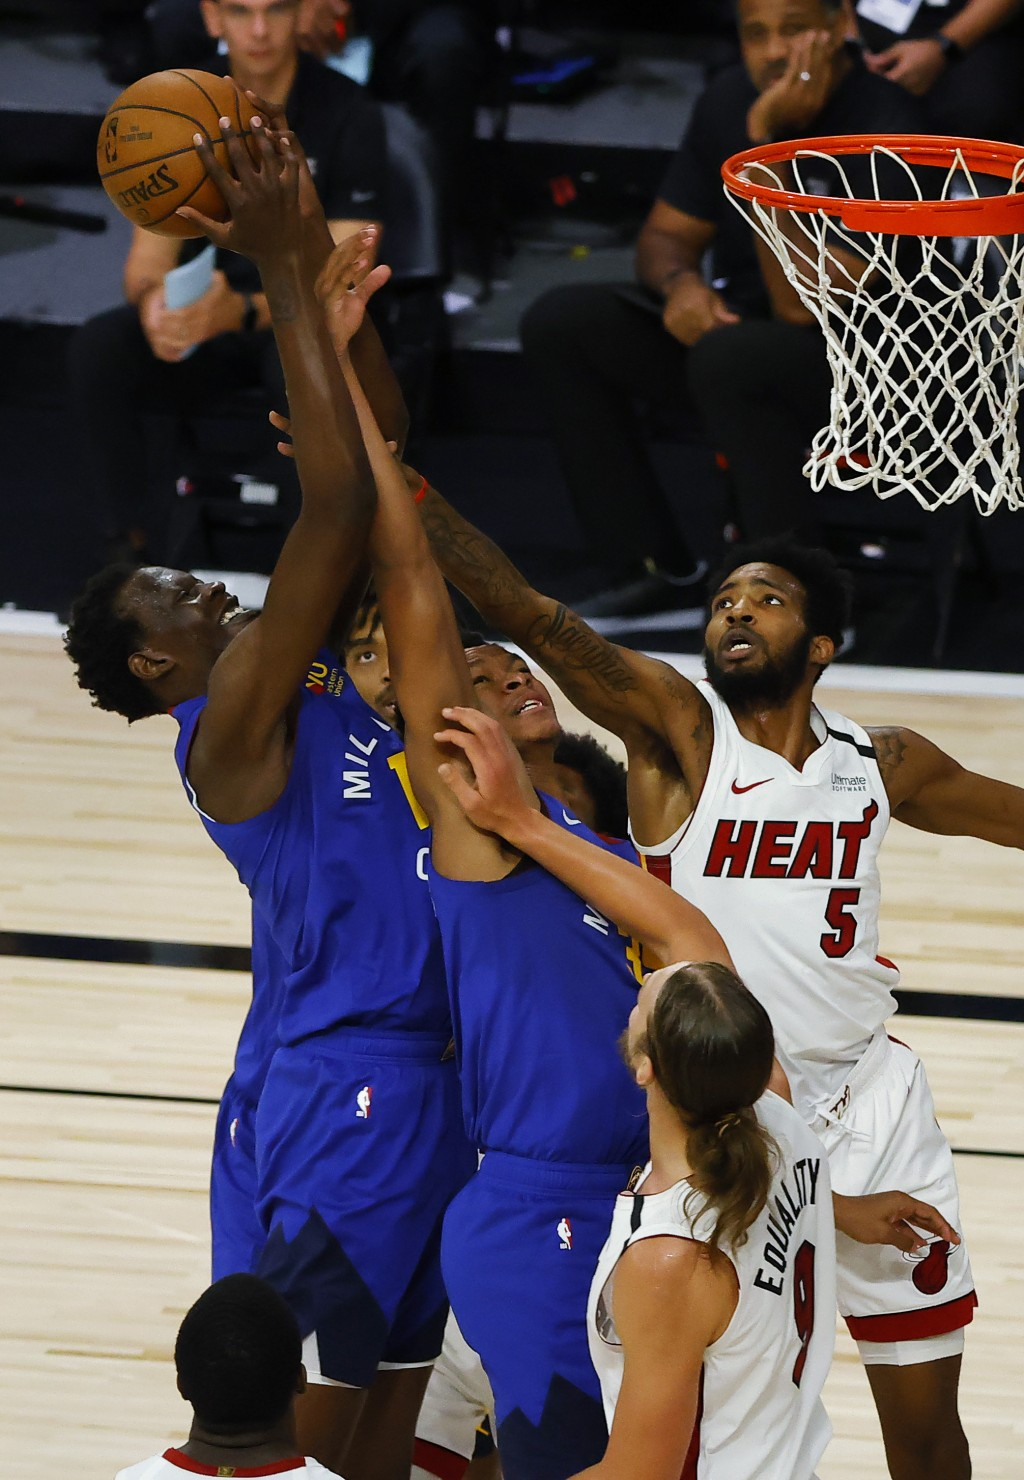 Denver Nuggets' Bol Bol (10) and PJ Dozier (35) battle for a rebound against Miami Heat's Derrick Jones Jr. (5) and Kelly Olynyk (9) during an NBA bas...